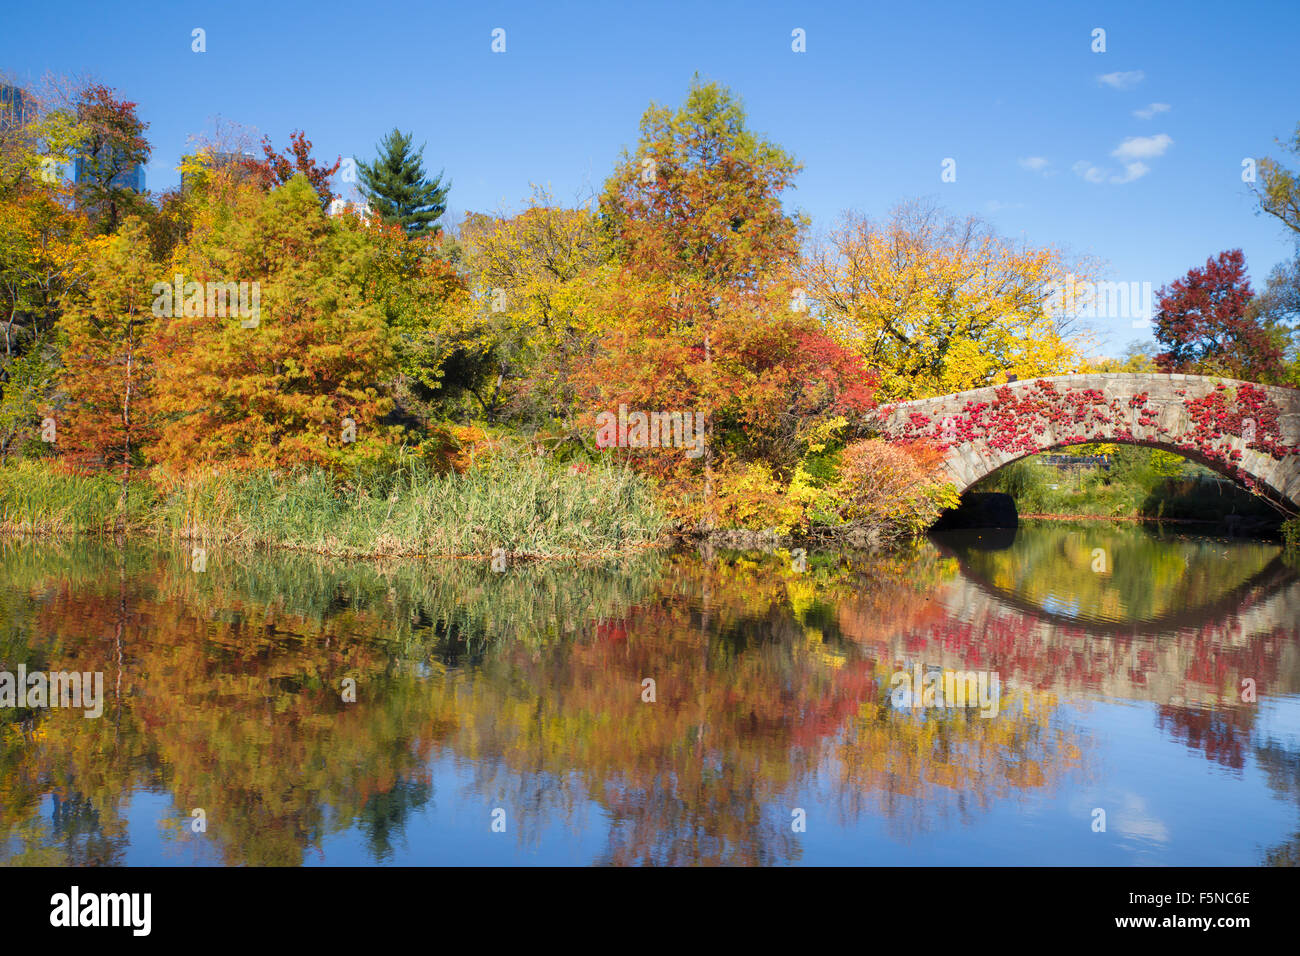 Colorful autumn view of Central Park in New York City at landmark Gapstow Bridge - Stock Image